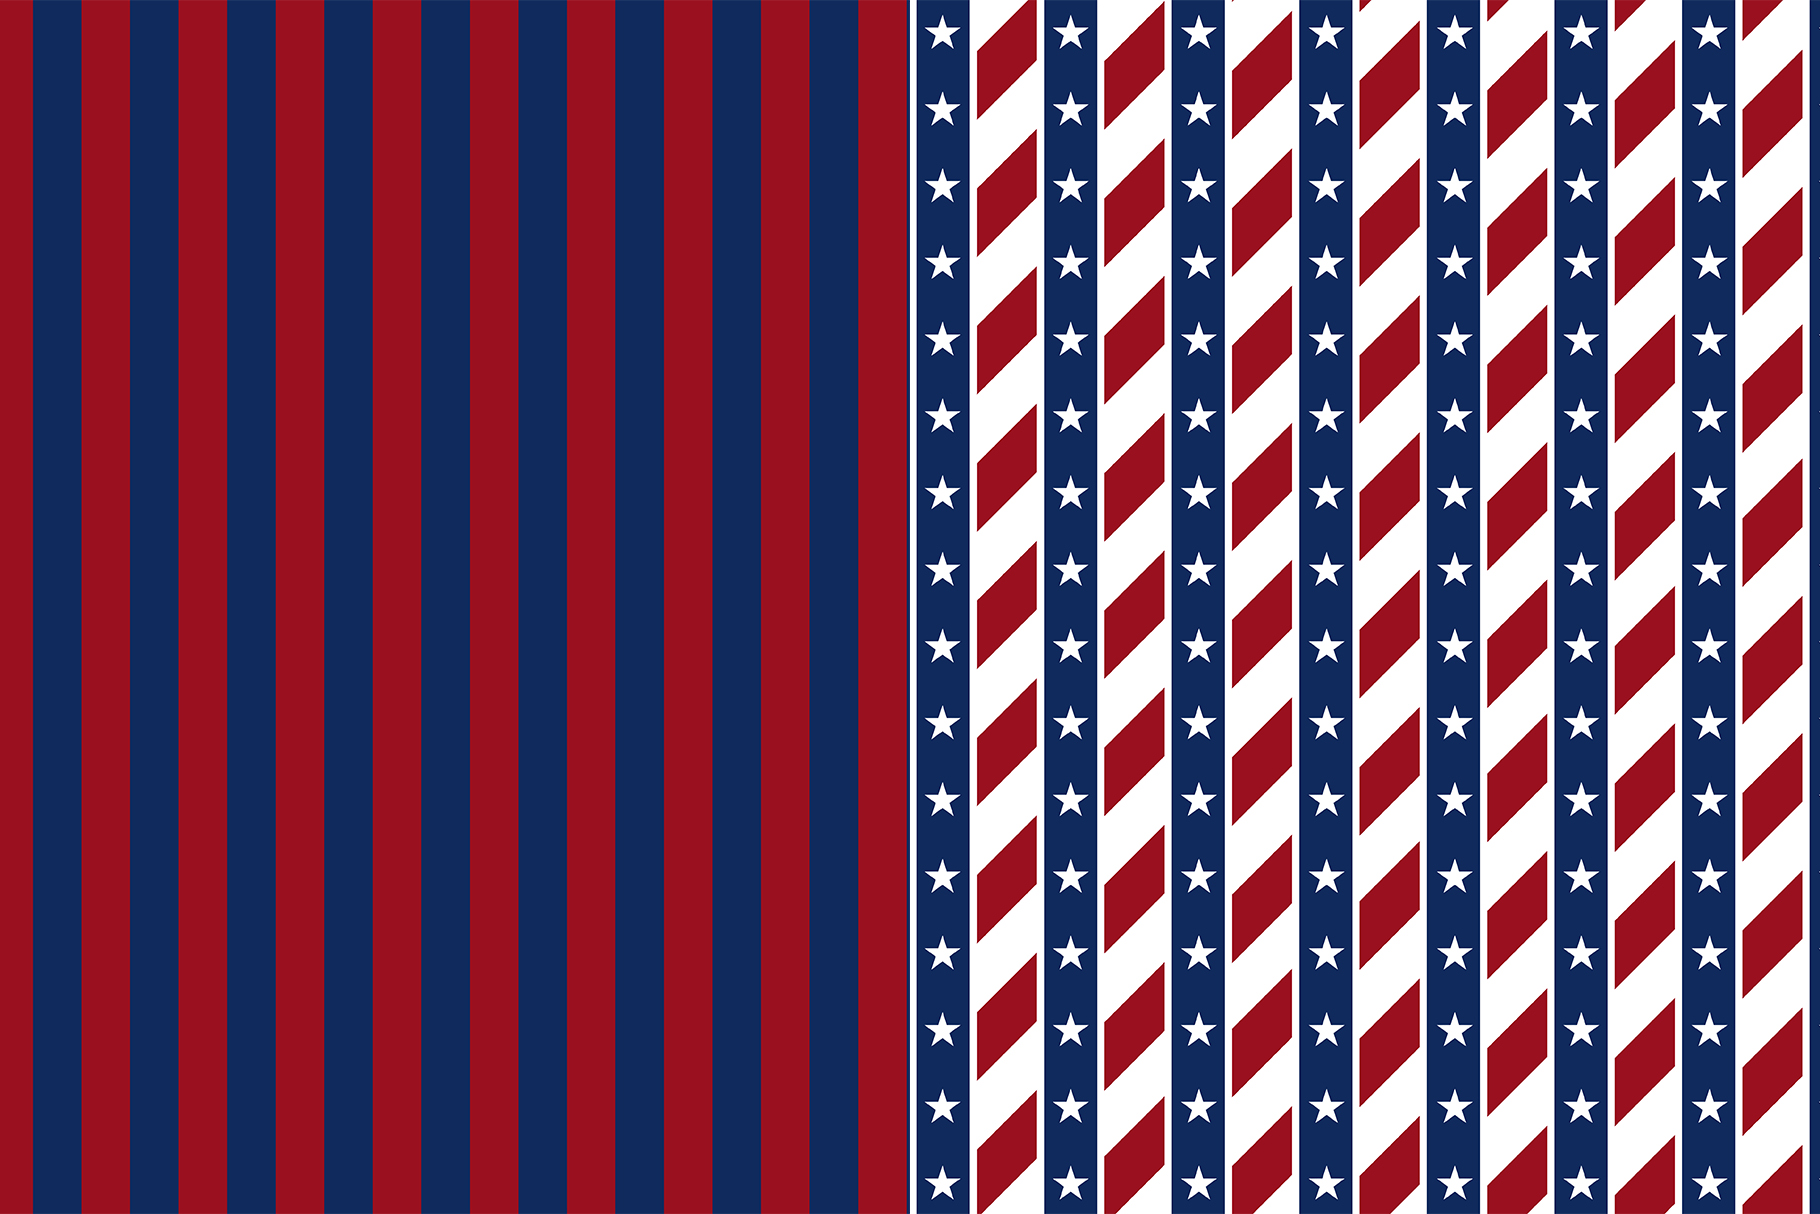 4 July 10 American Patterns example image 7